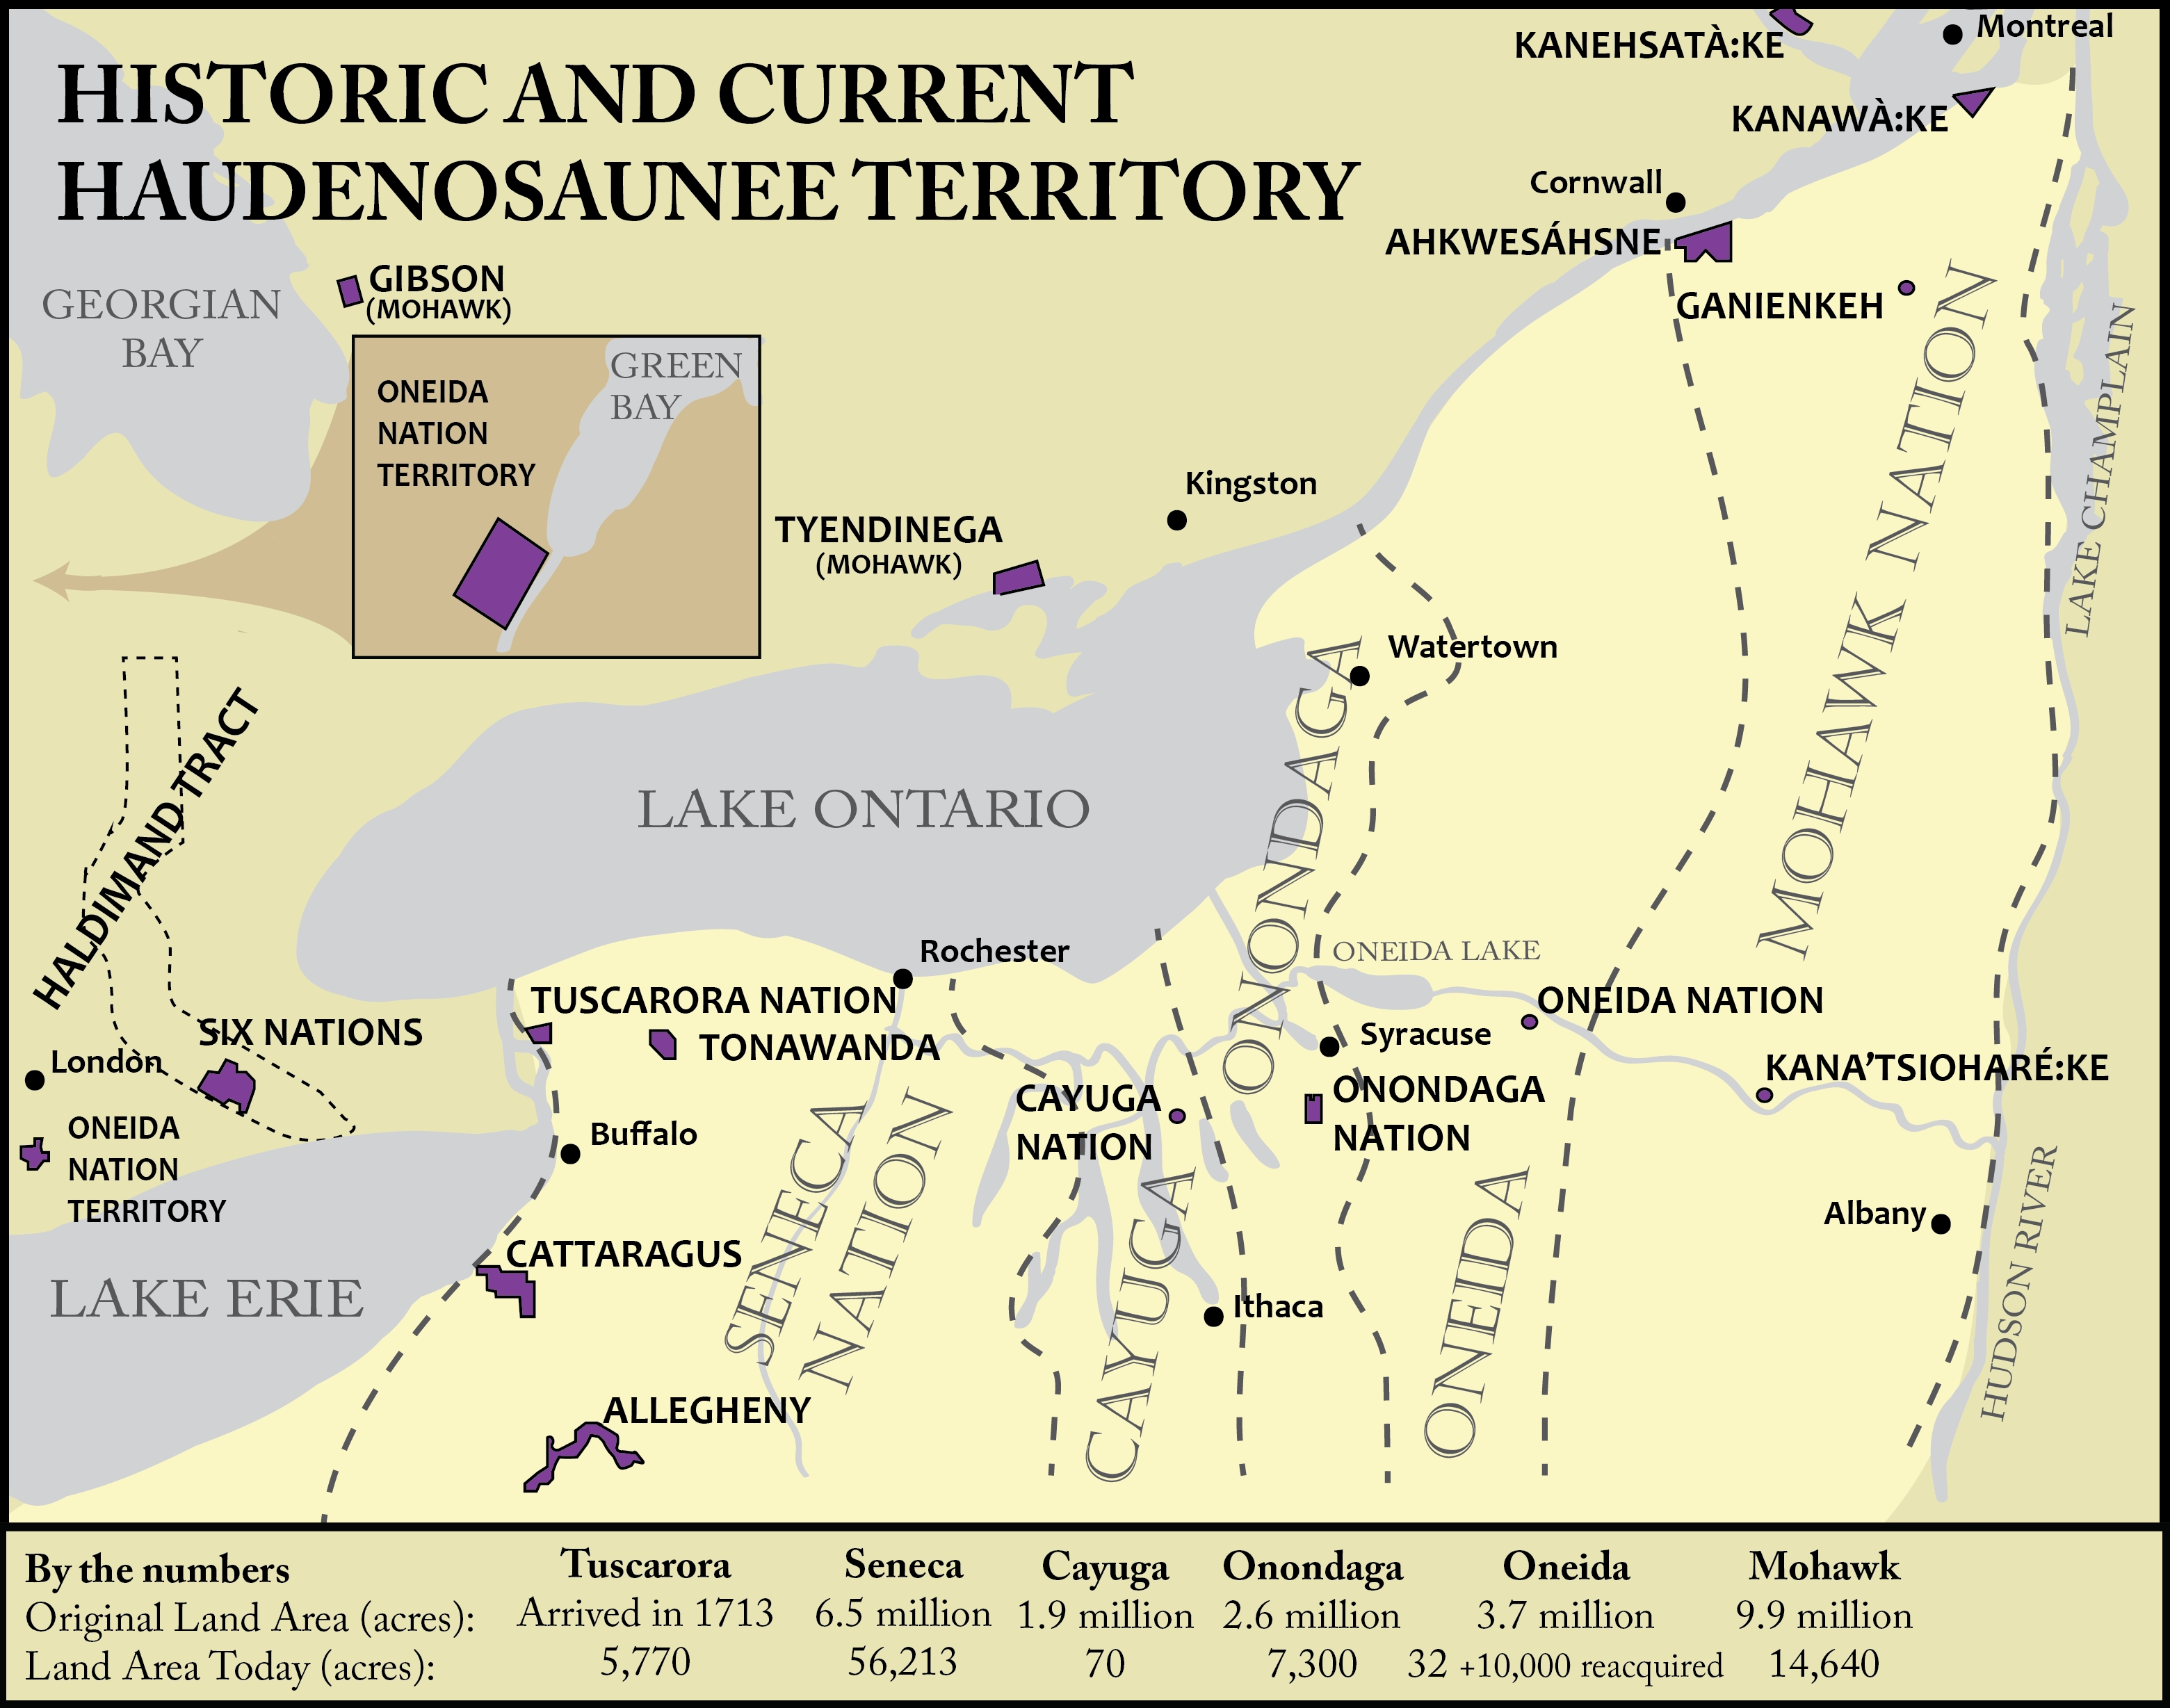 Historic and Current Haudenosaunee Territory detail